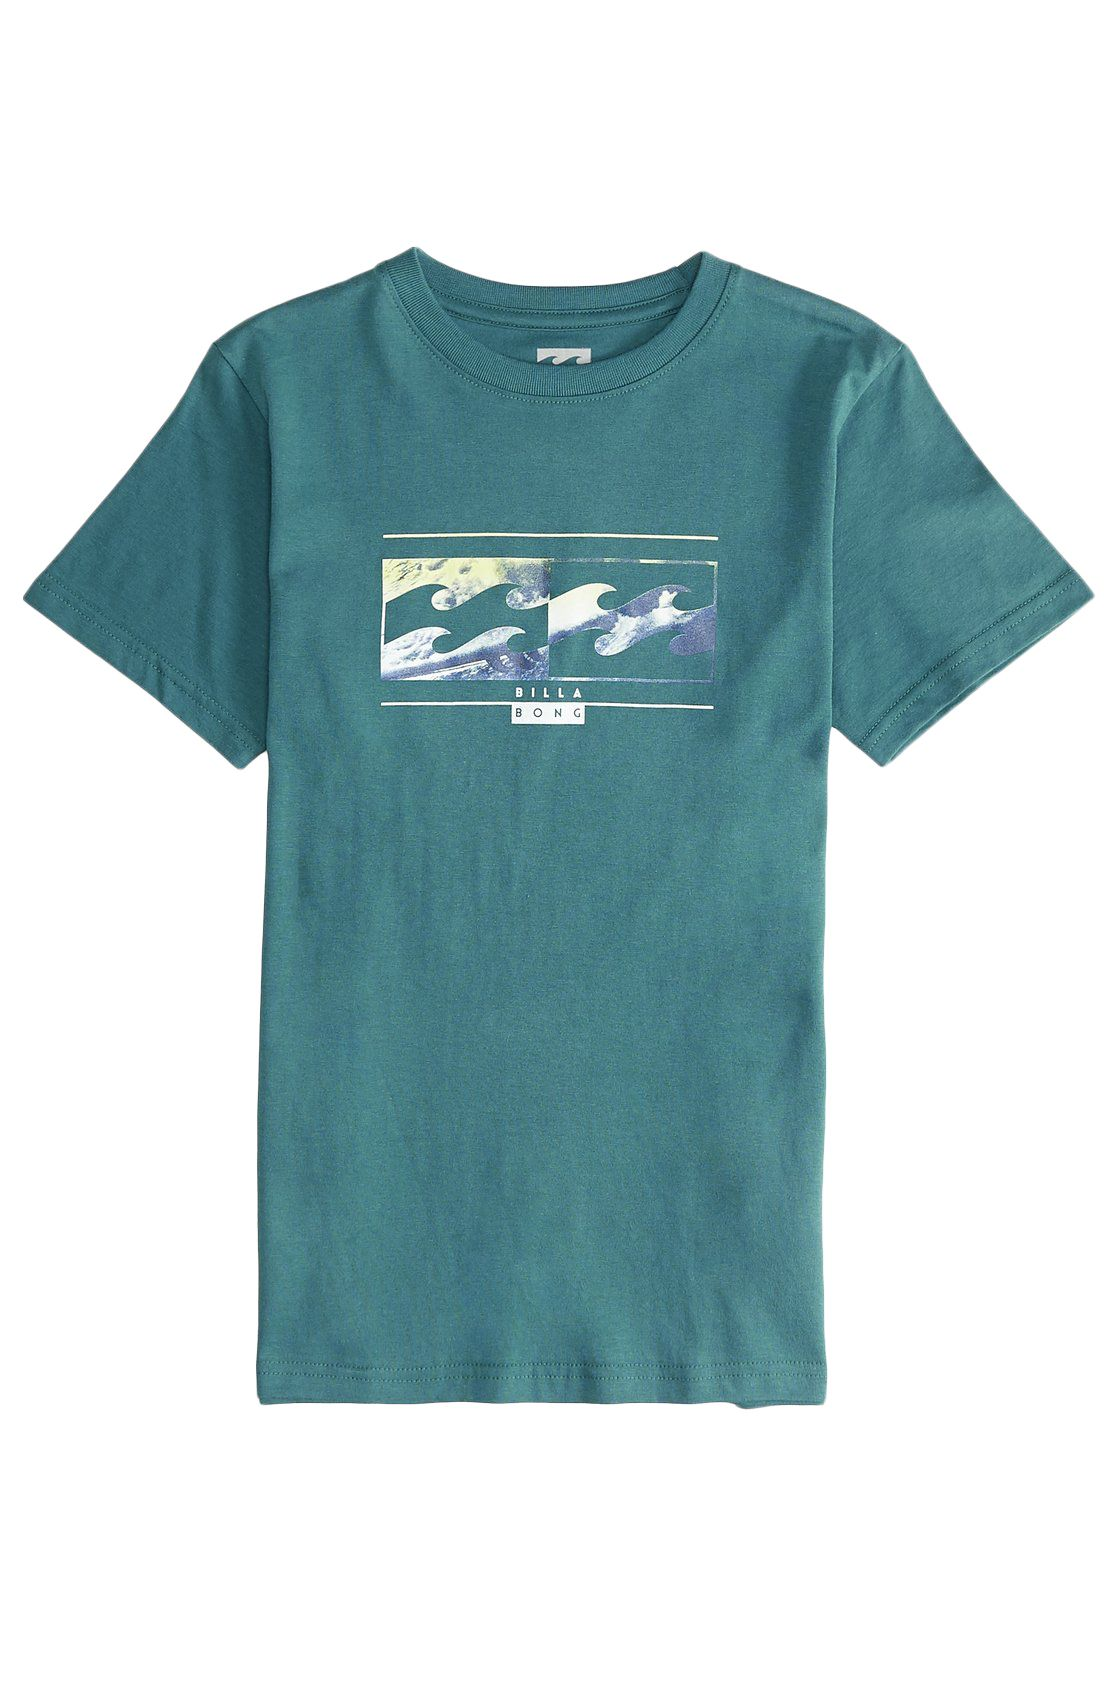 T-Shirt Billabong INVERSED Emerald